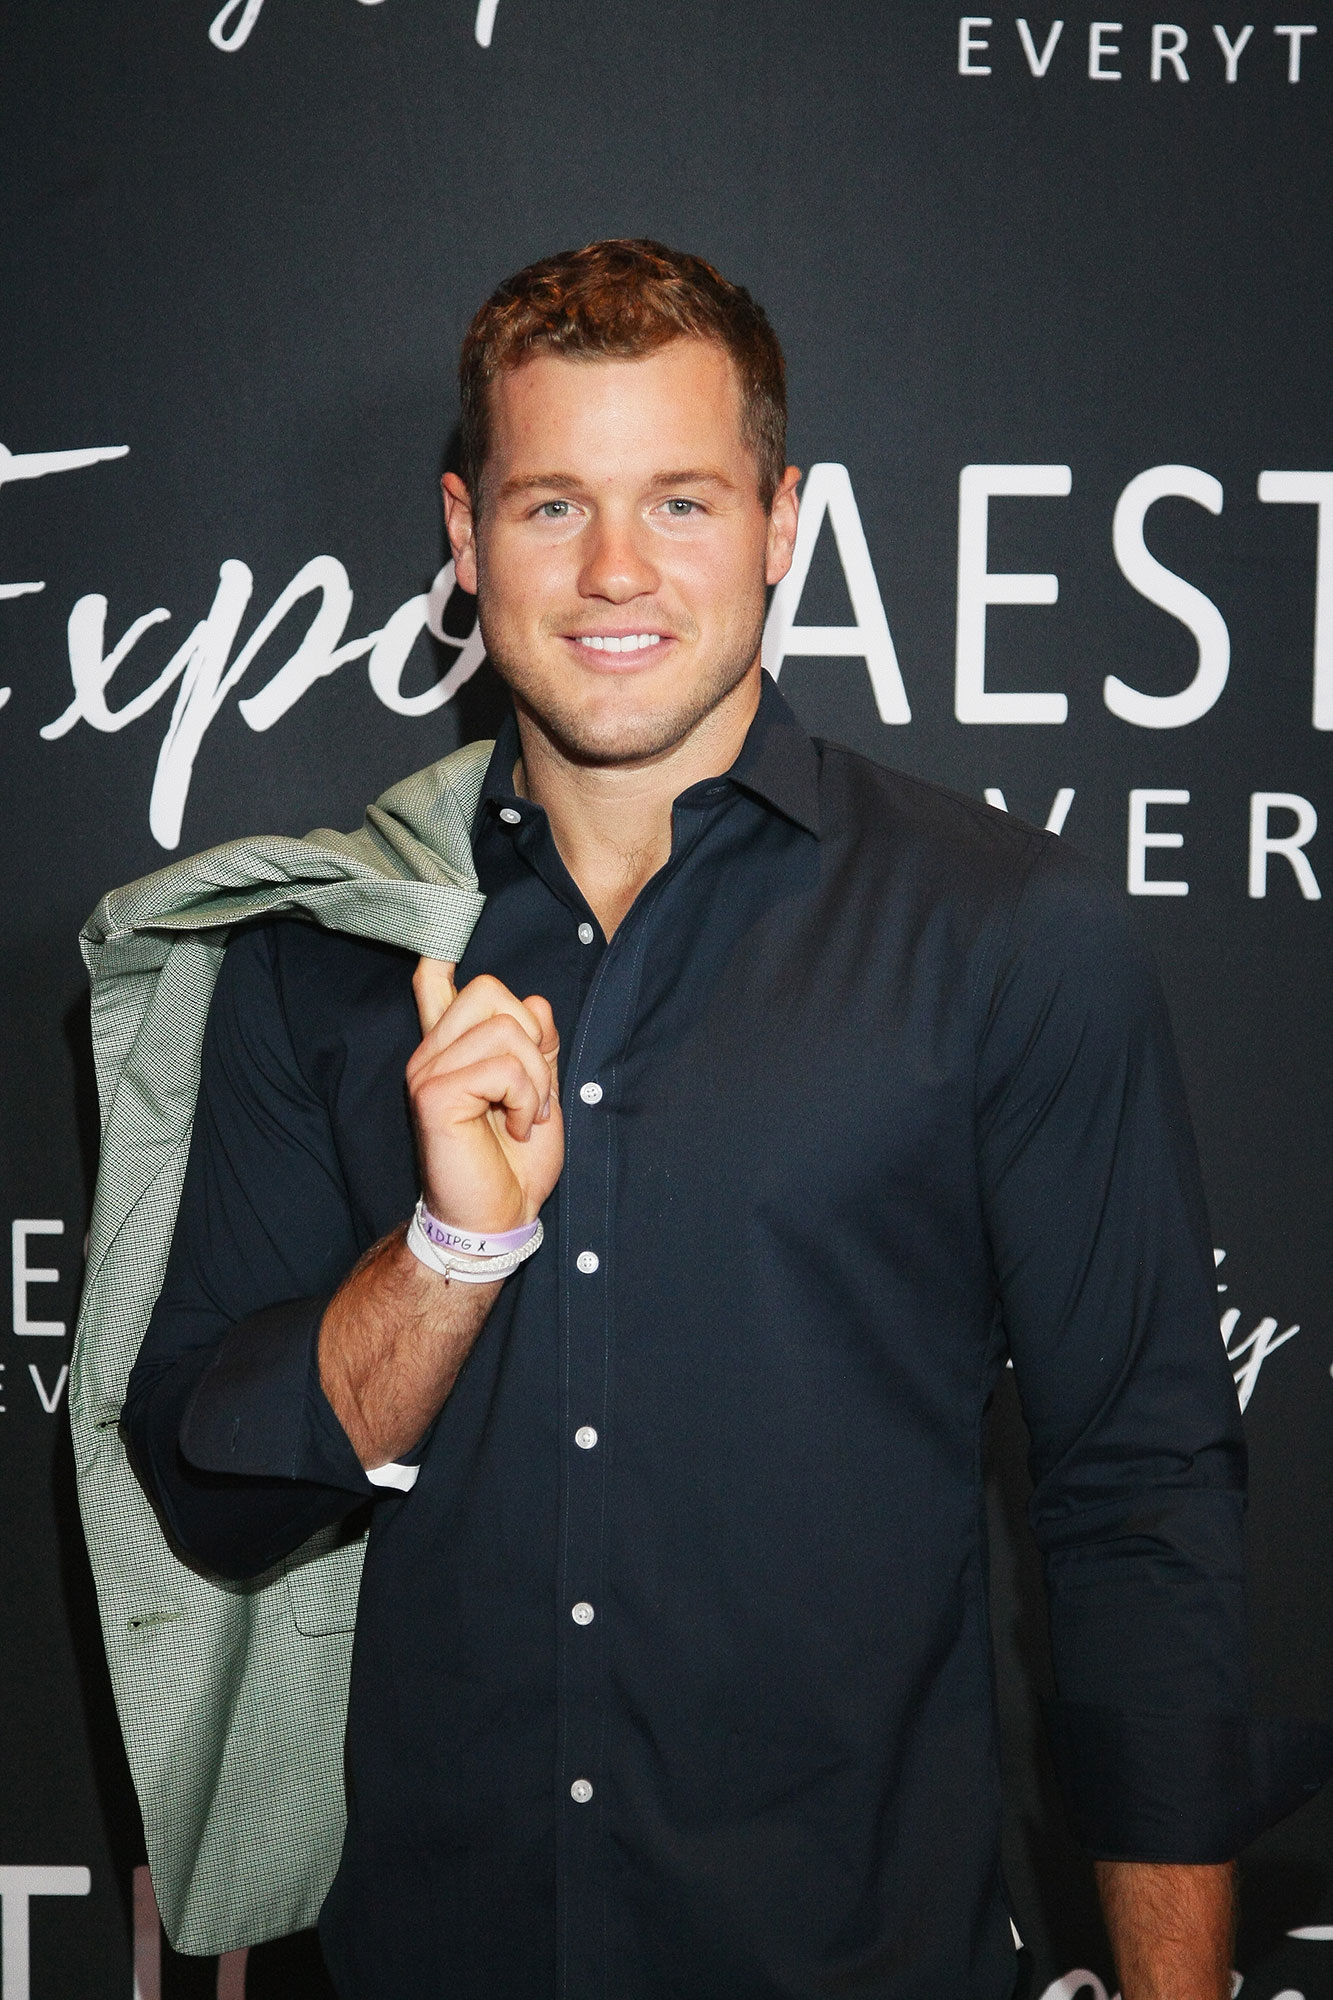 Colton Underwood - Reality TV star Colton Underwood poses for photos on the red carpet during The Aesthetic Everything Beauty Expo Trade Show at The Phoenician on August 10, 2018 in Scottsdale, Arizona. (Photo by John Medina/Getty Images)